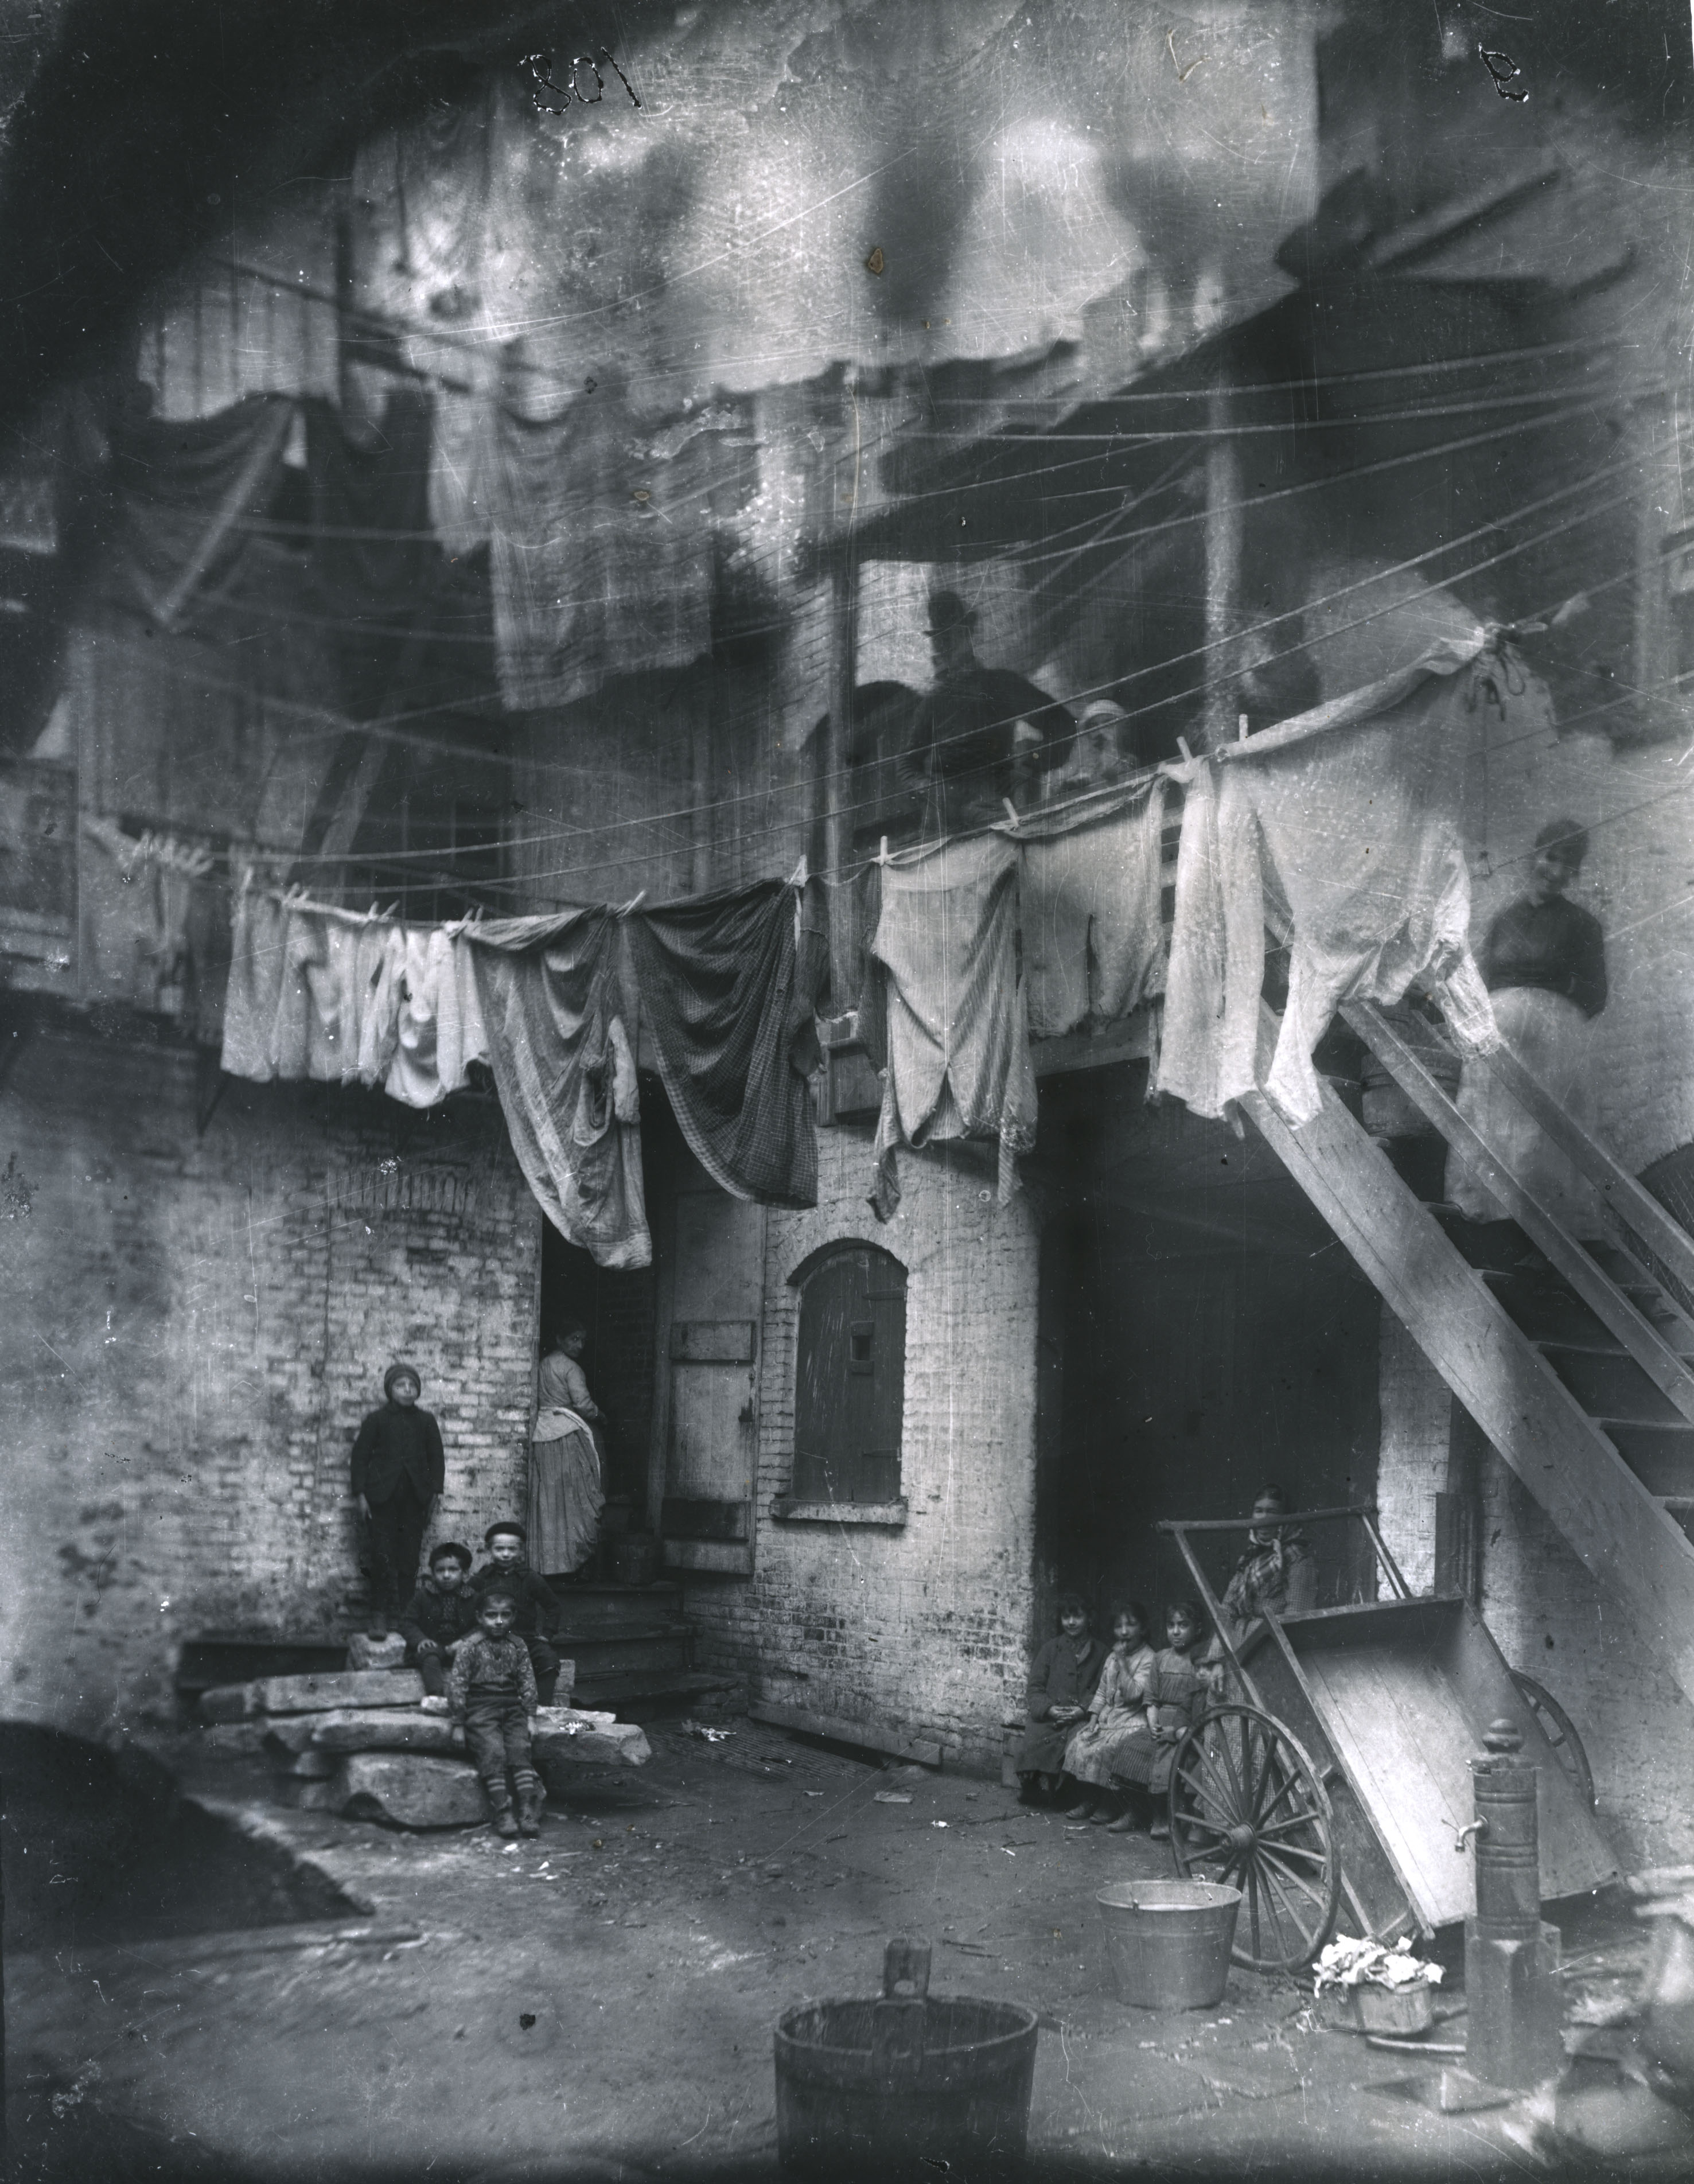 Tenement yard New York slum